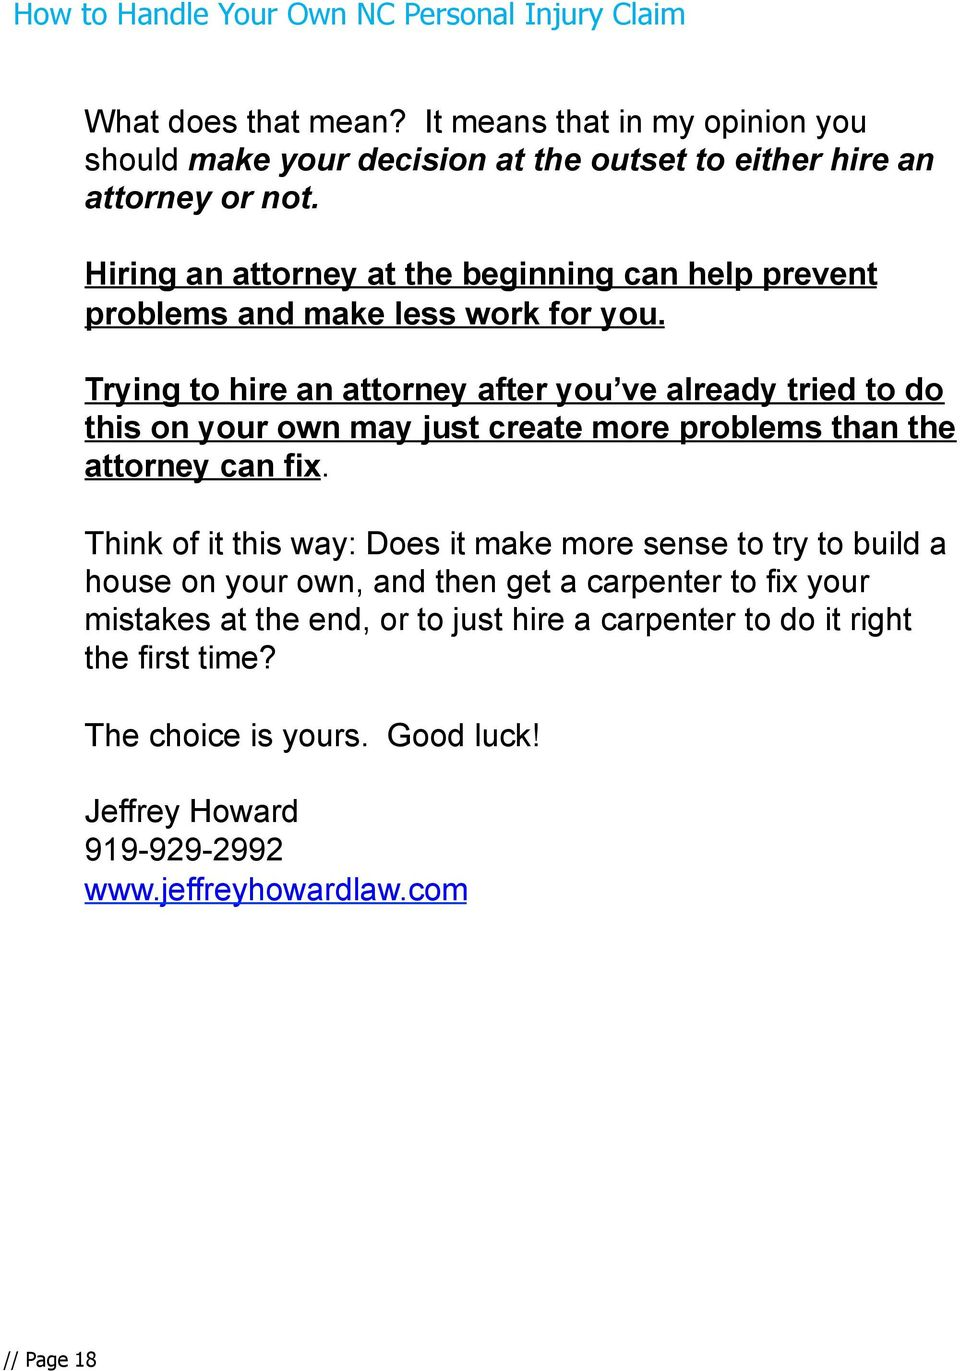 Hiring an attorney at the beginning can help prevent problems and make less work for you.